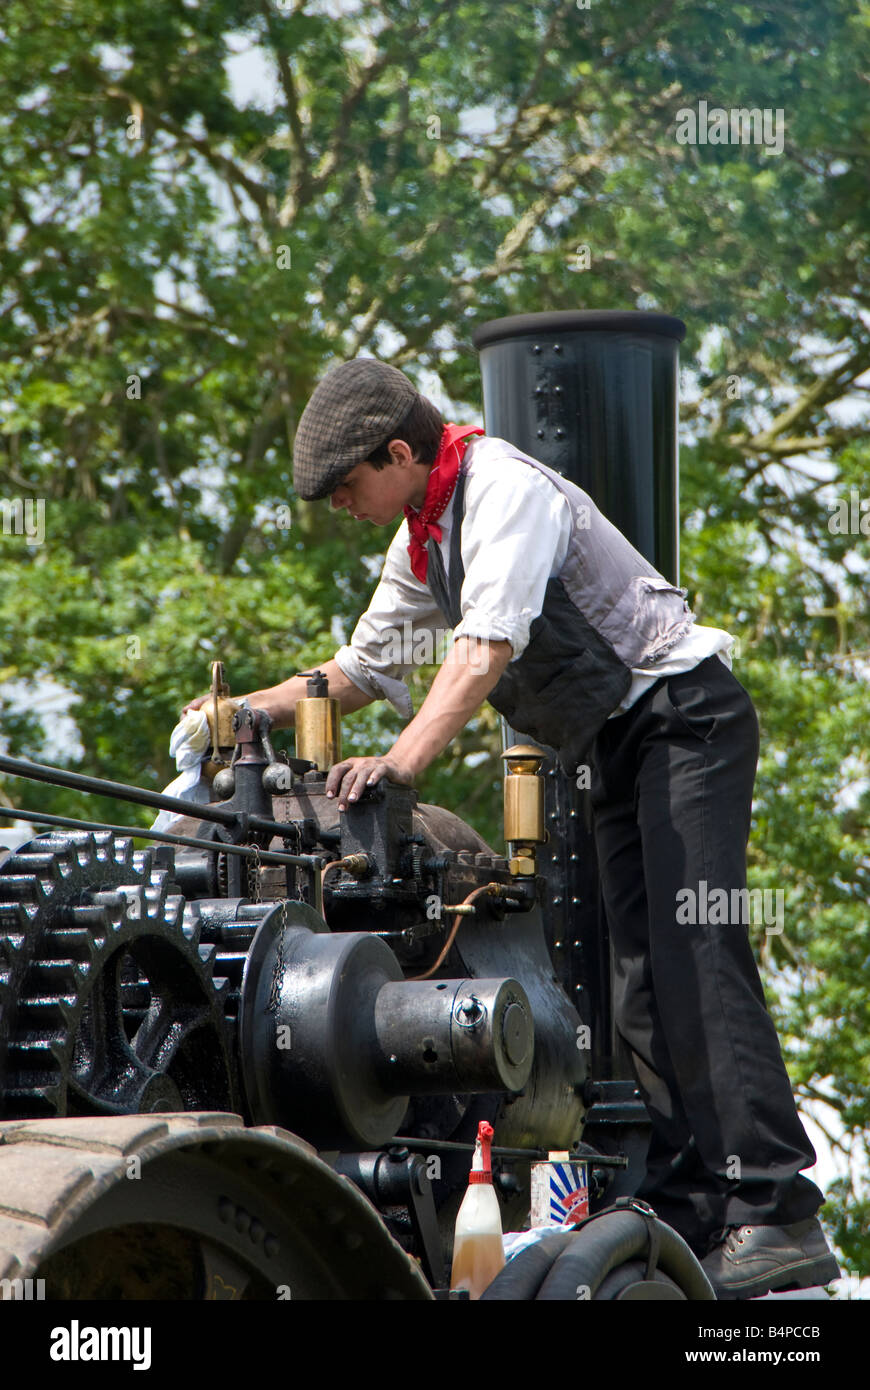 A young enthusiast cleans and maintains a steam traction engine at a vintage vehicle show. UK - Stock Image